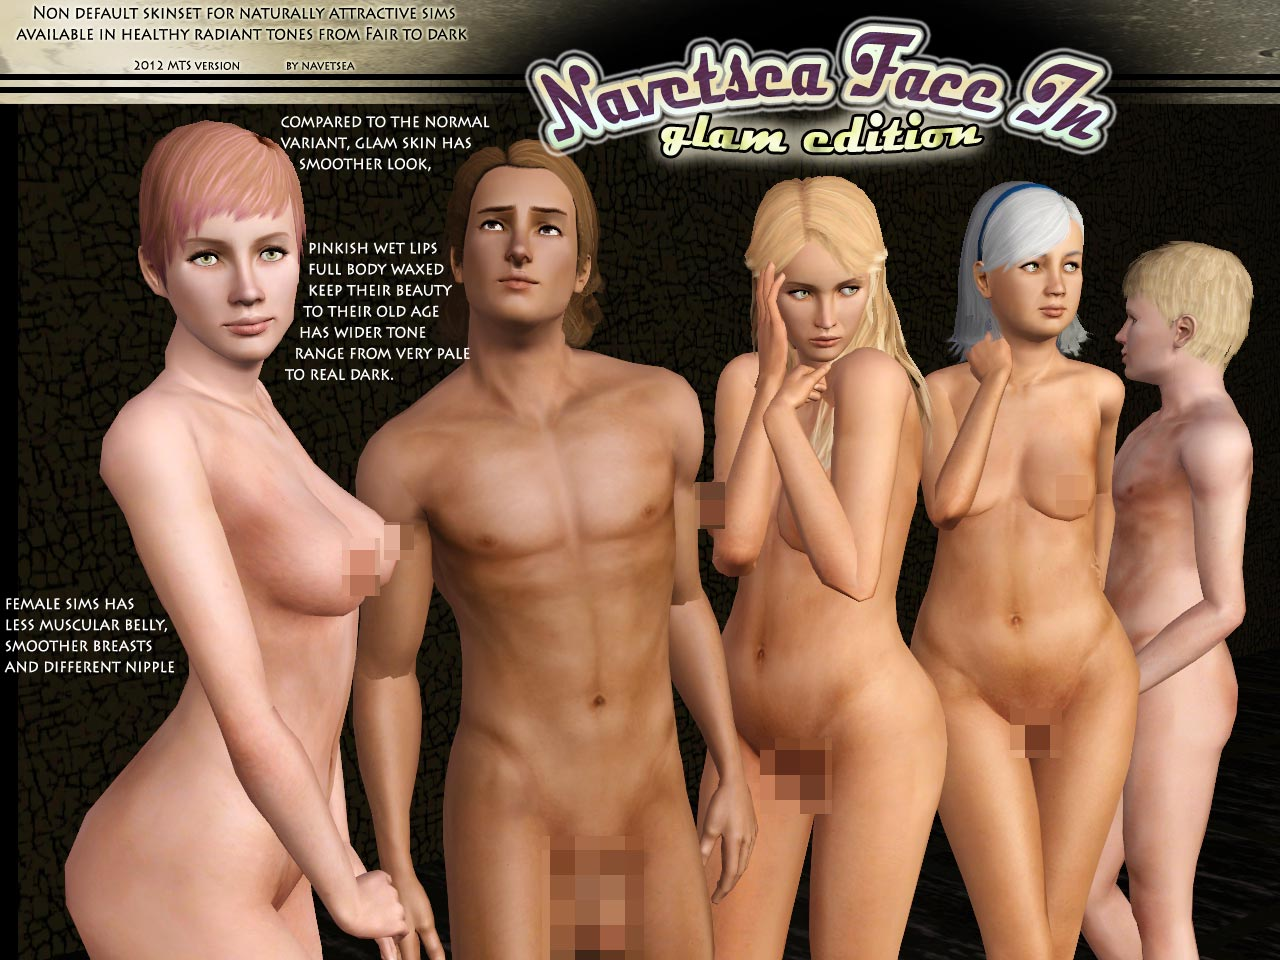 Sims 2 adult skins male nude erotic tube